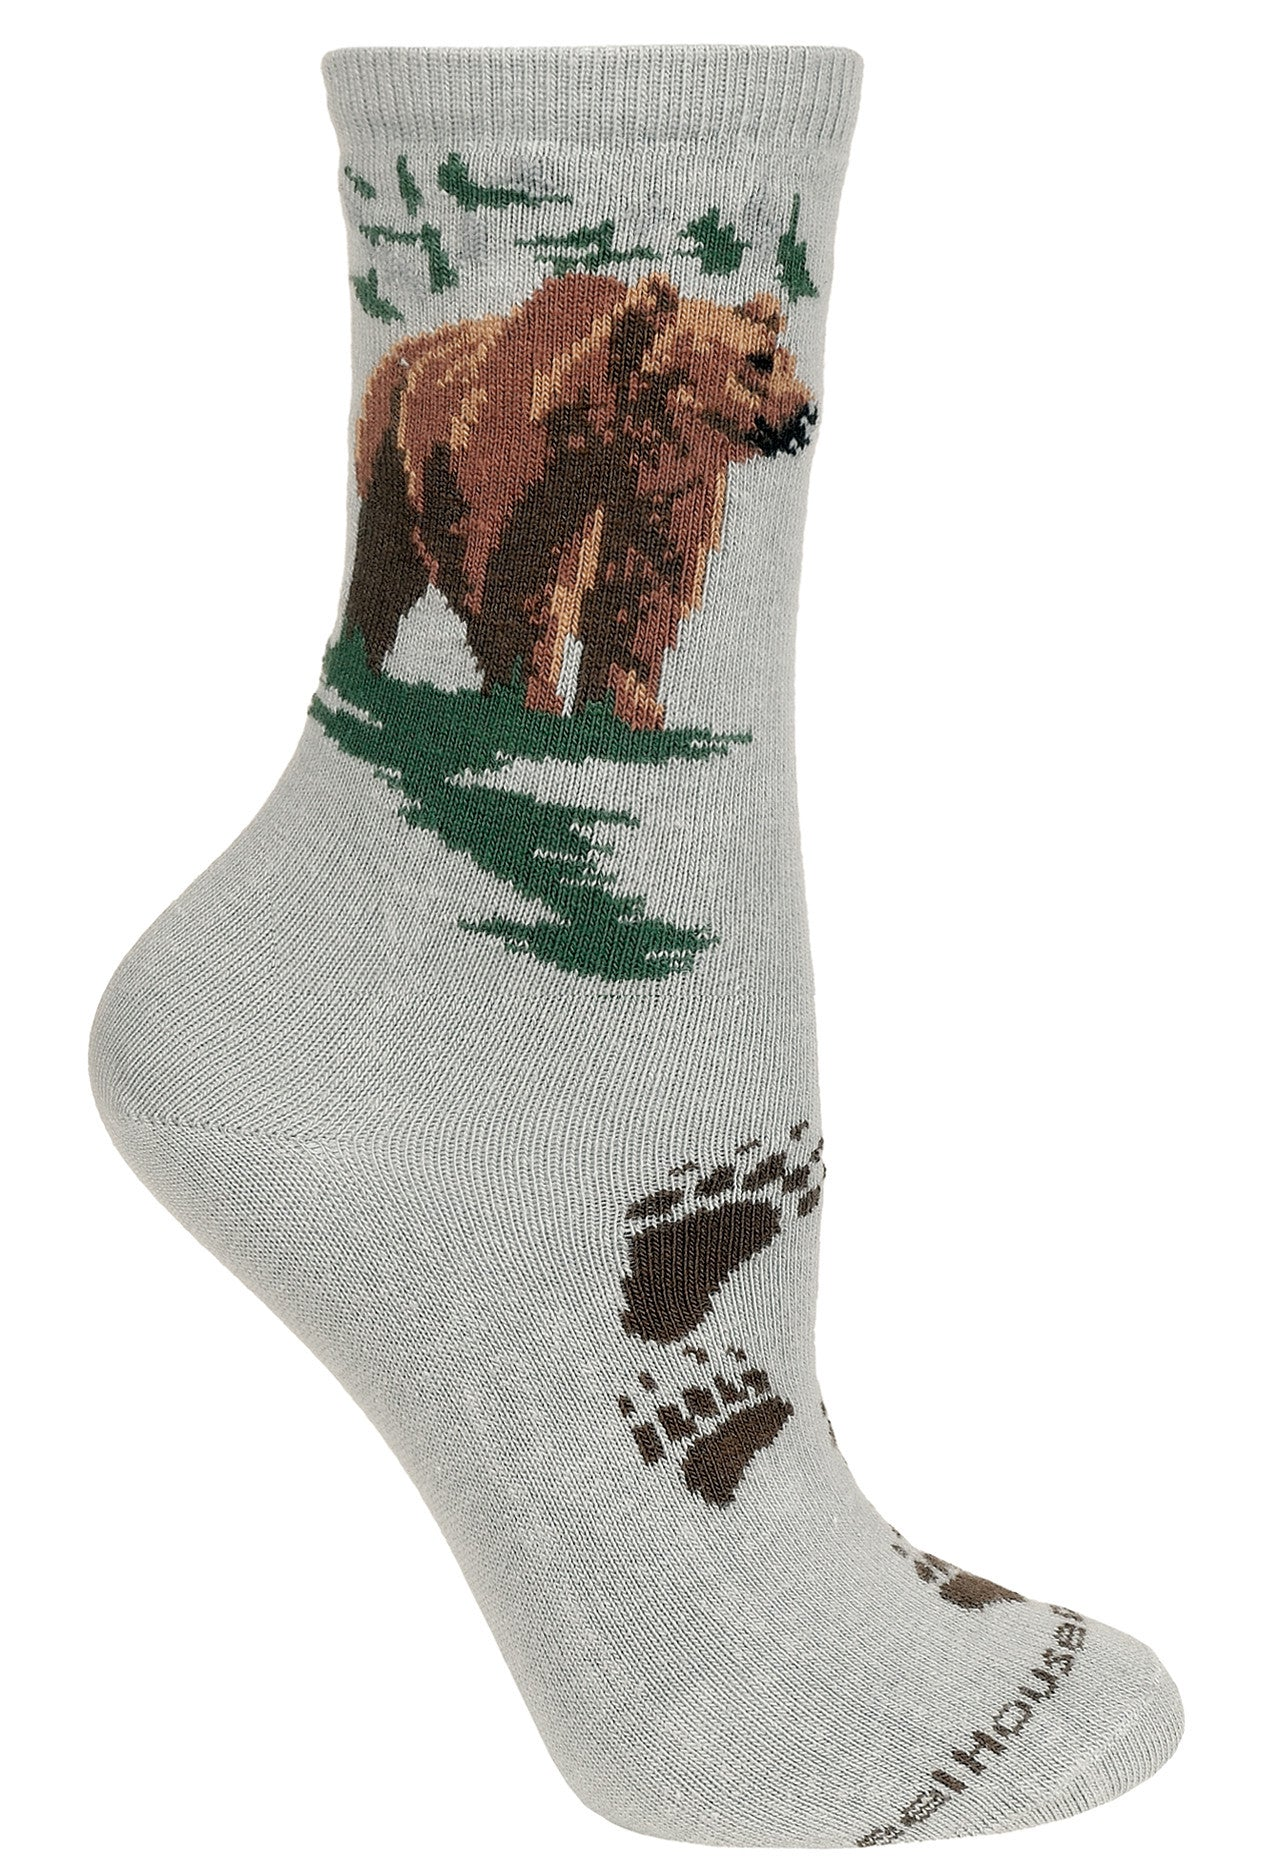 Grizzly Bear on Gray Crew Socks